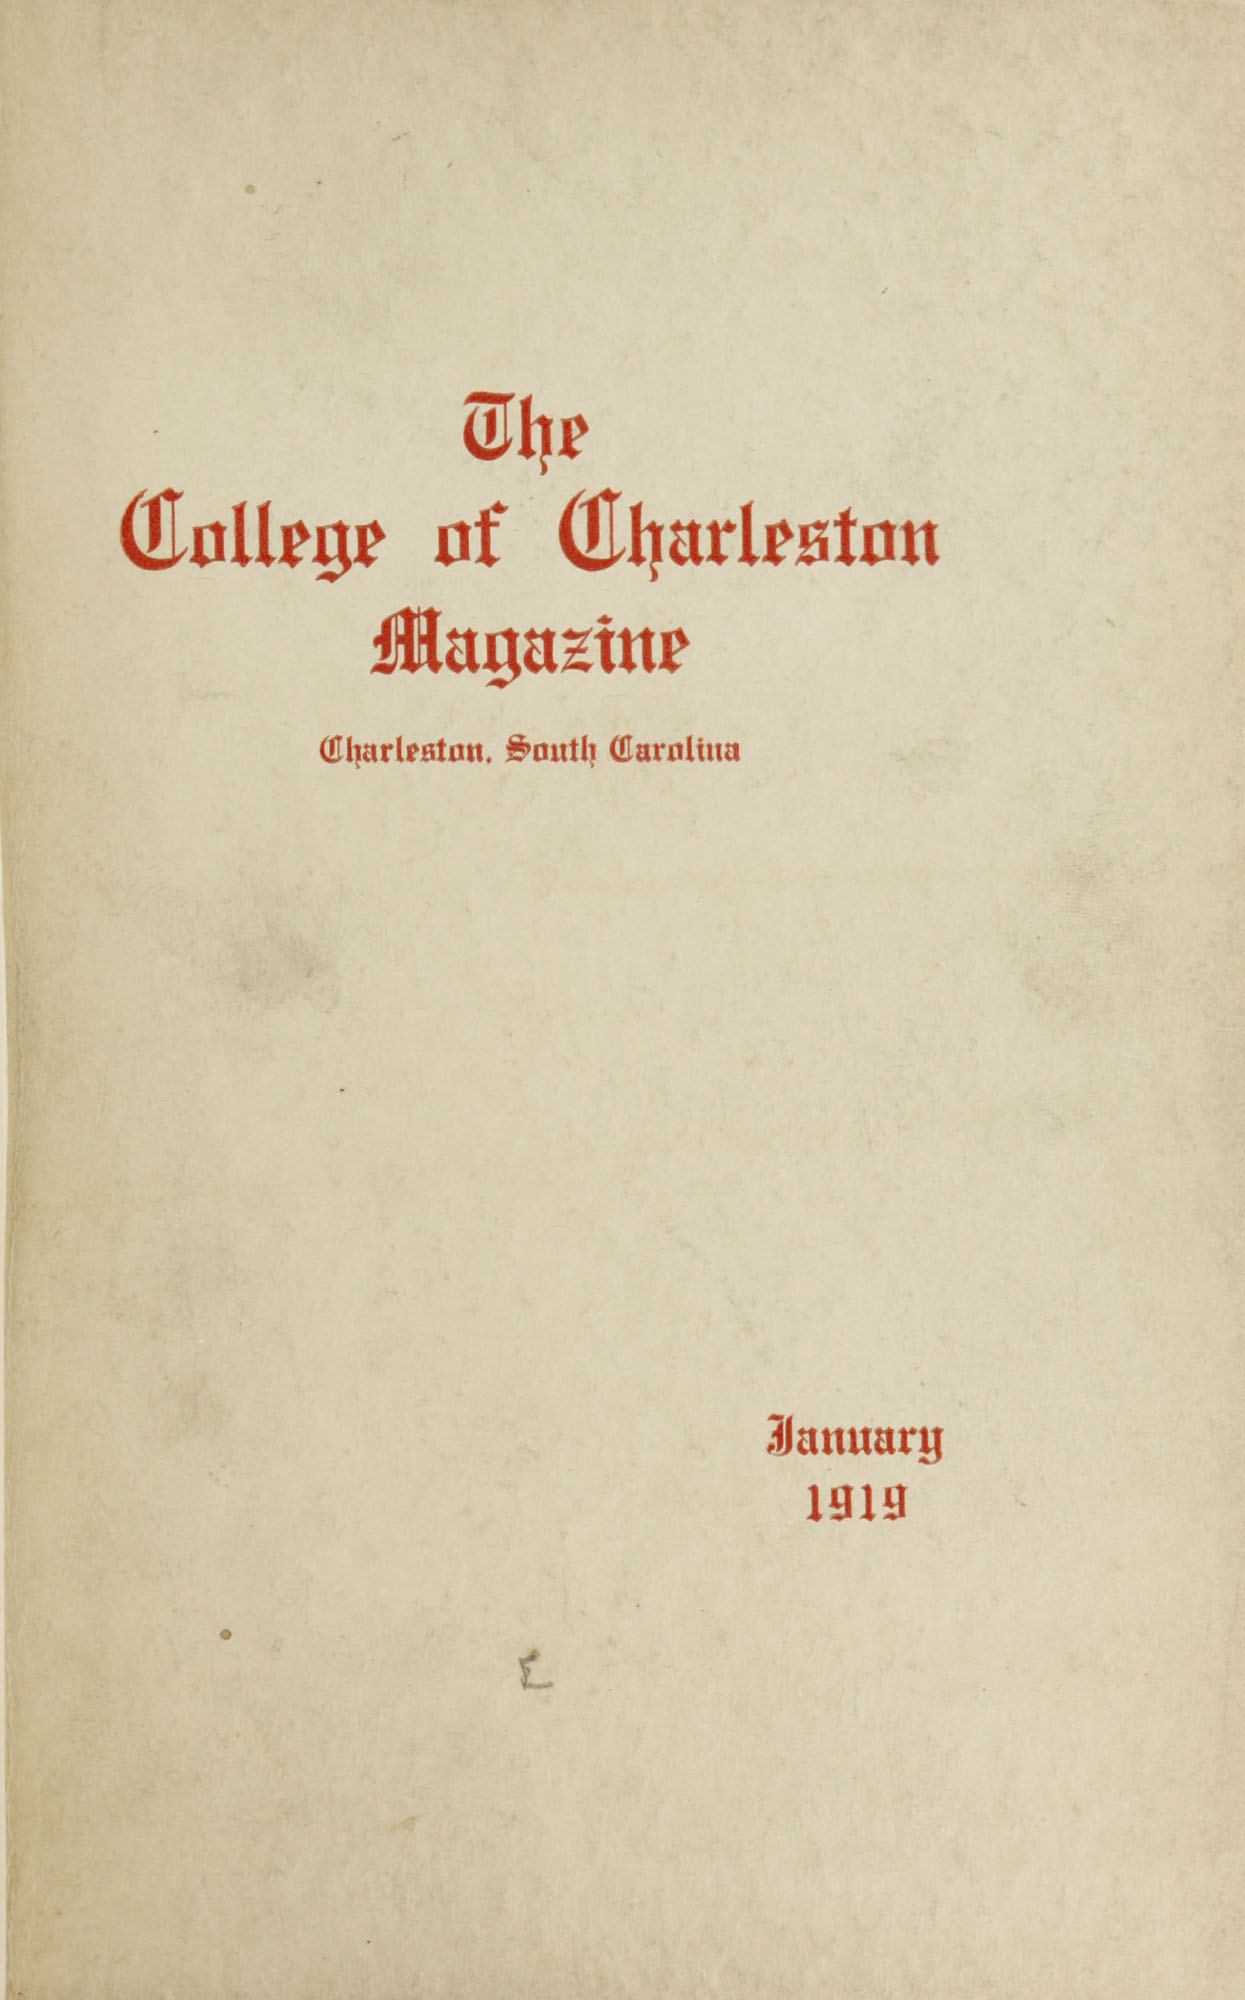 College of Charleston Magazine, 1919